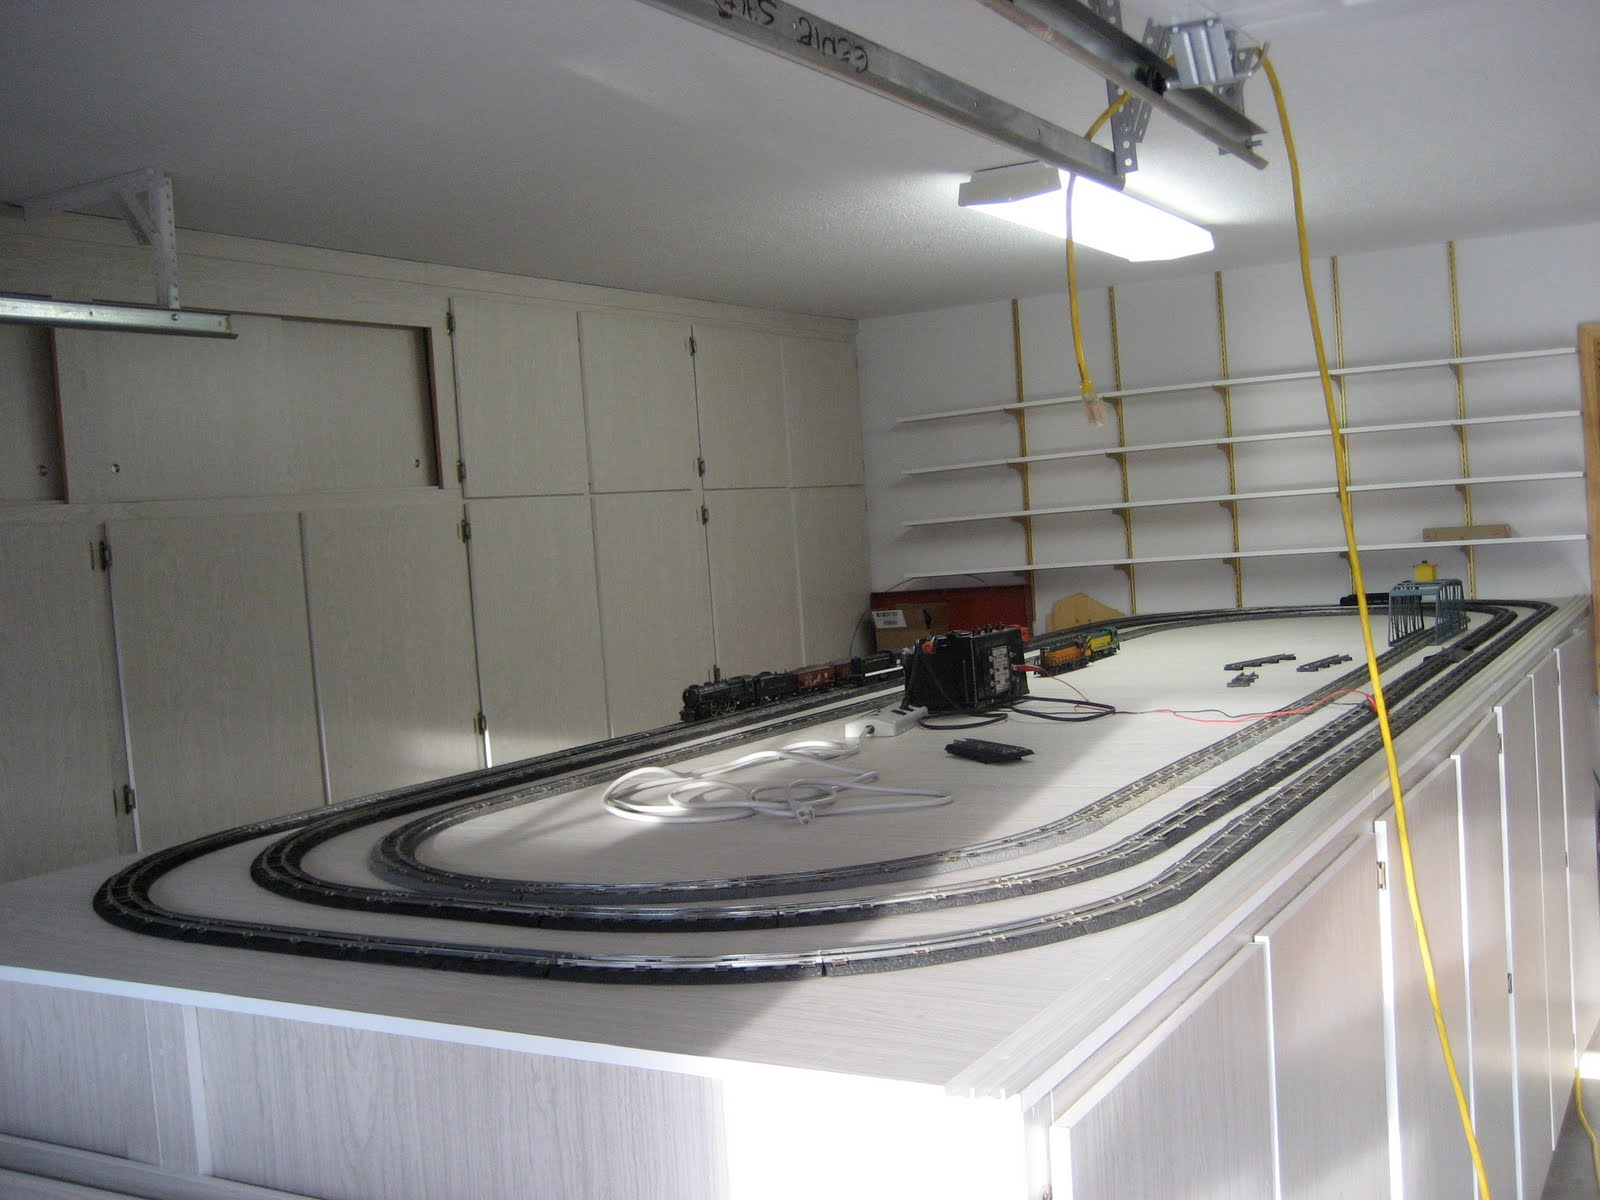 Model train track cleaning cars games